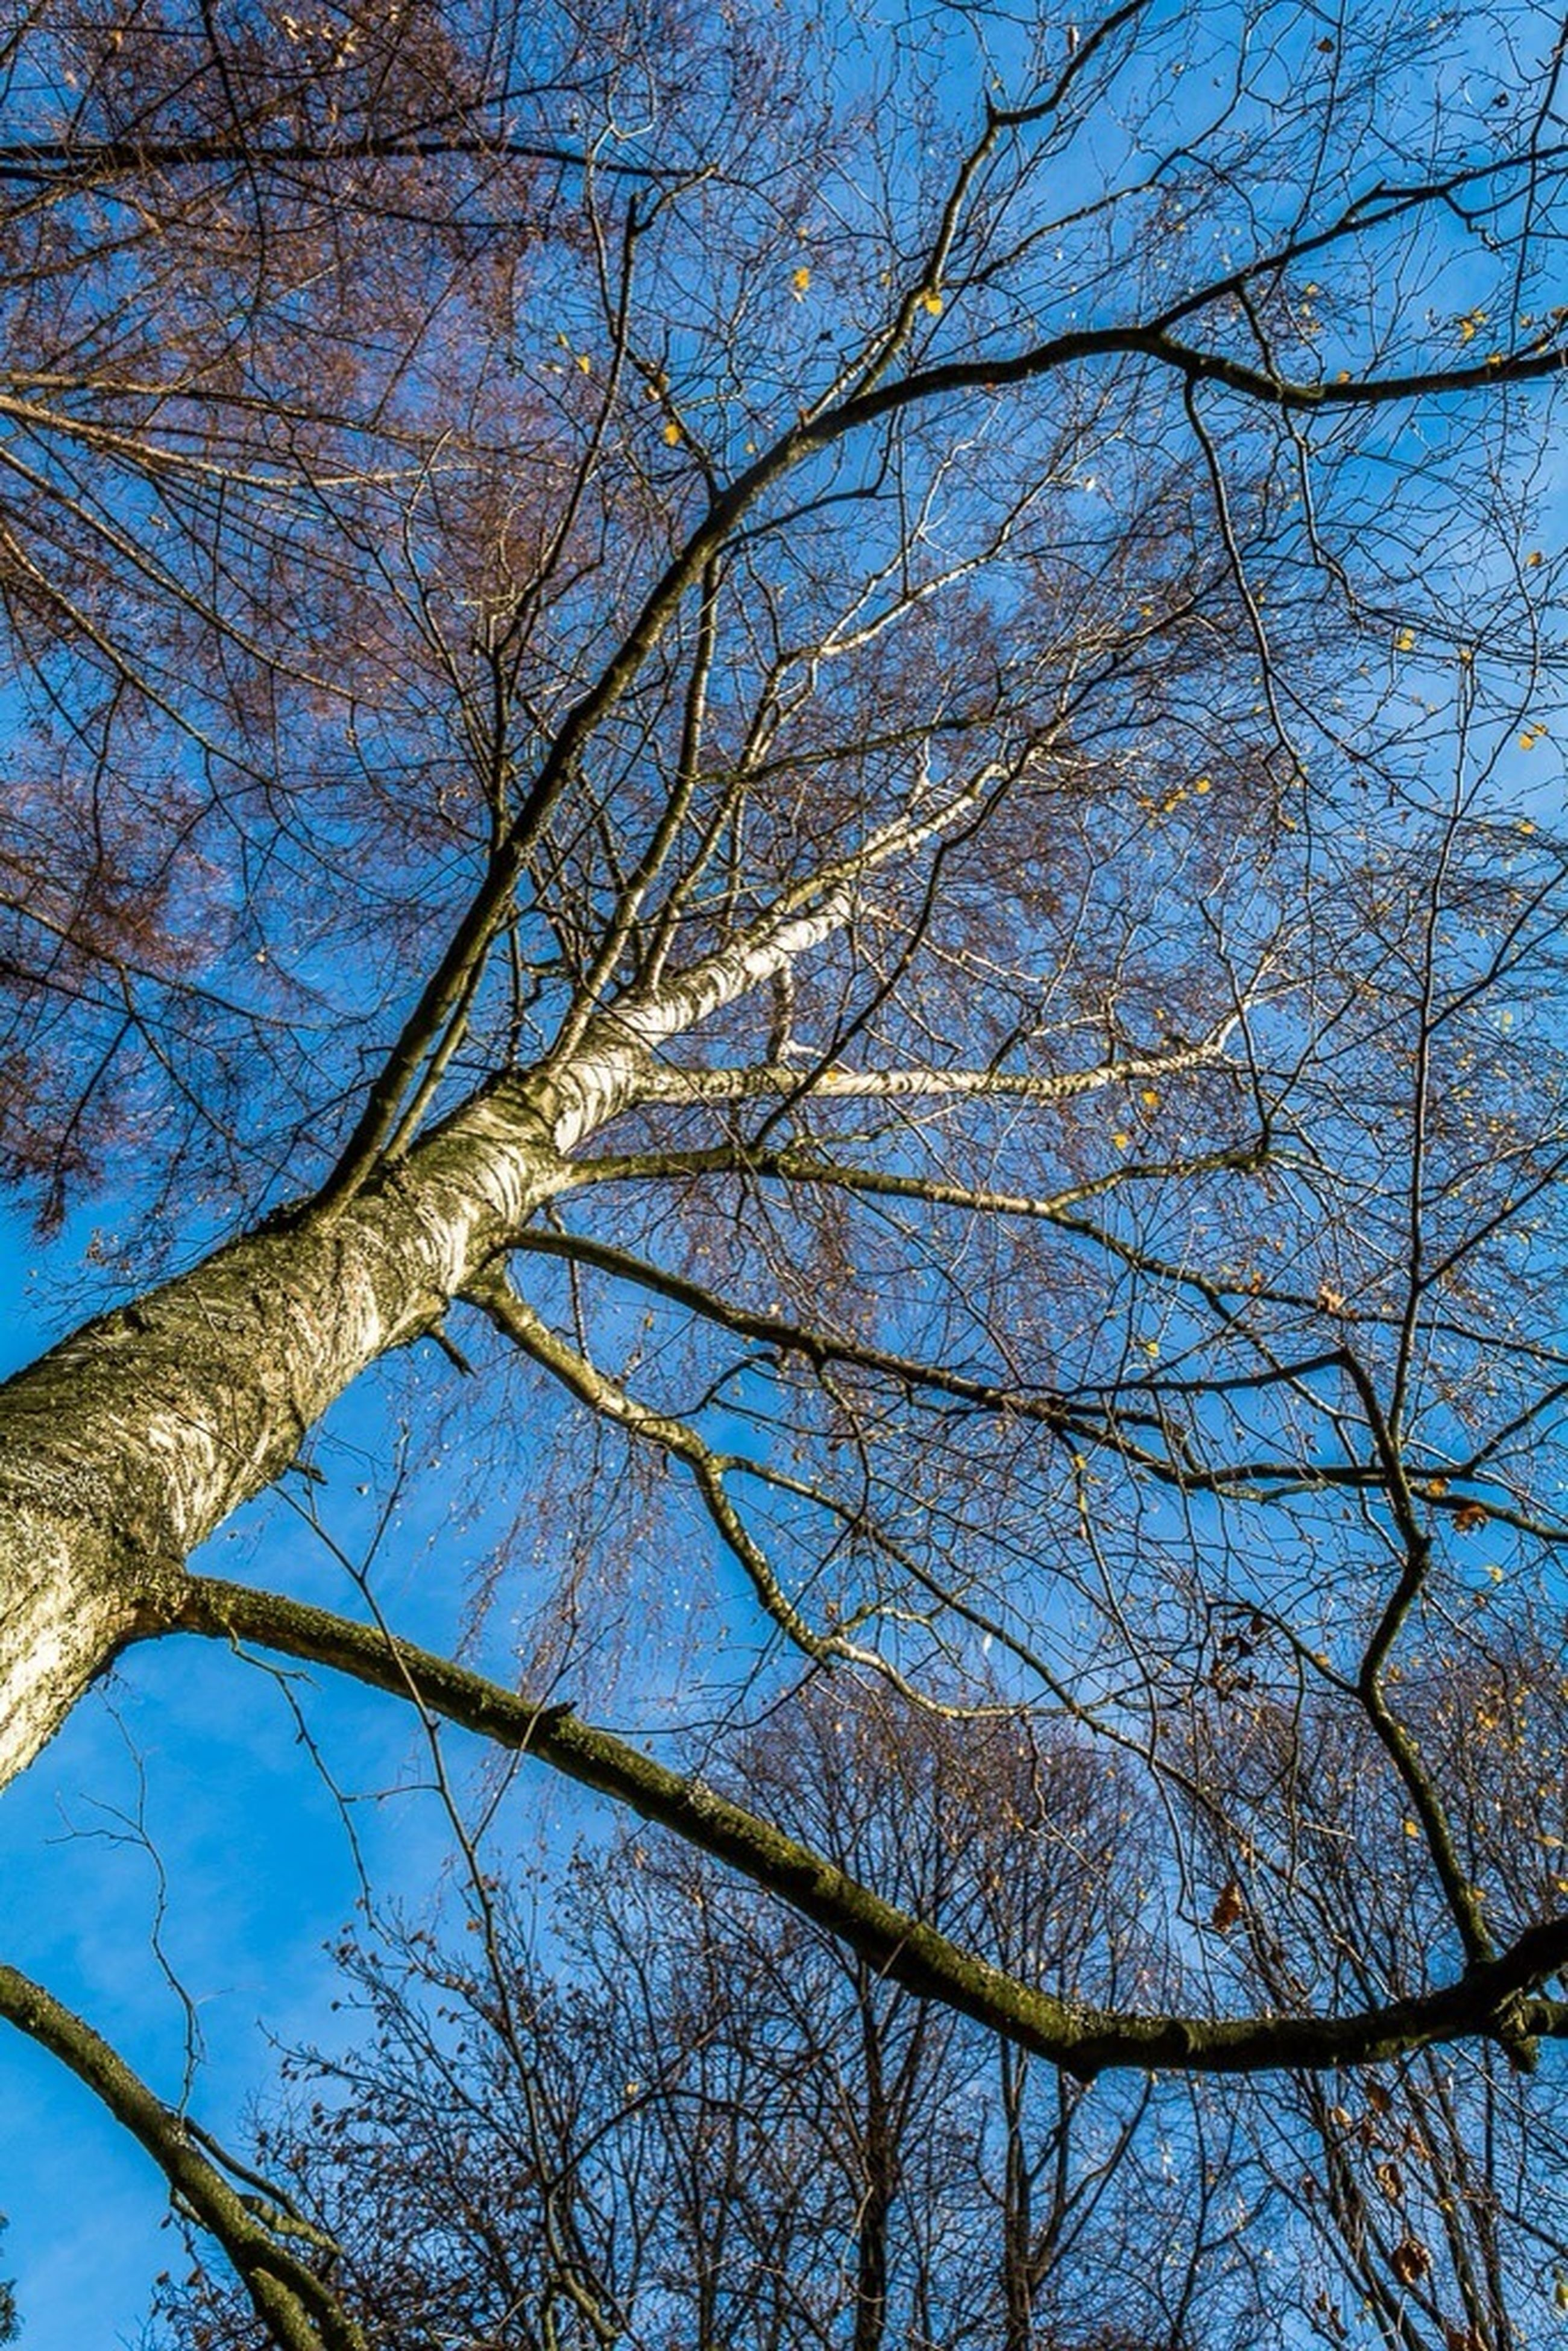 tree, low angle view, branch, bare tree, blue, sky, nature, beauty in nature, tranquility, growth, tree trunk, clear sky, scenics, outdoors, day, no people, backgrounds, high section, sunlight, silhouette